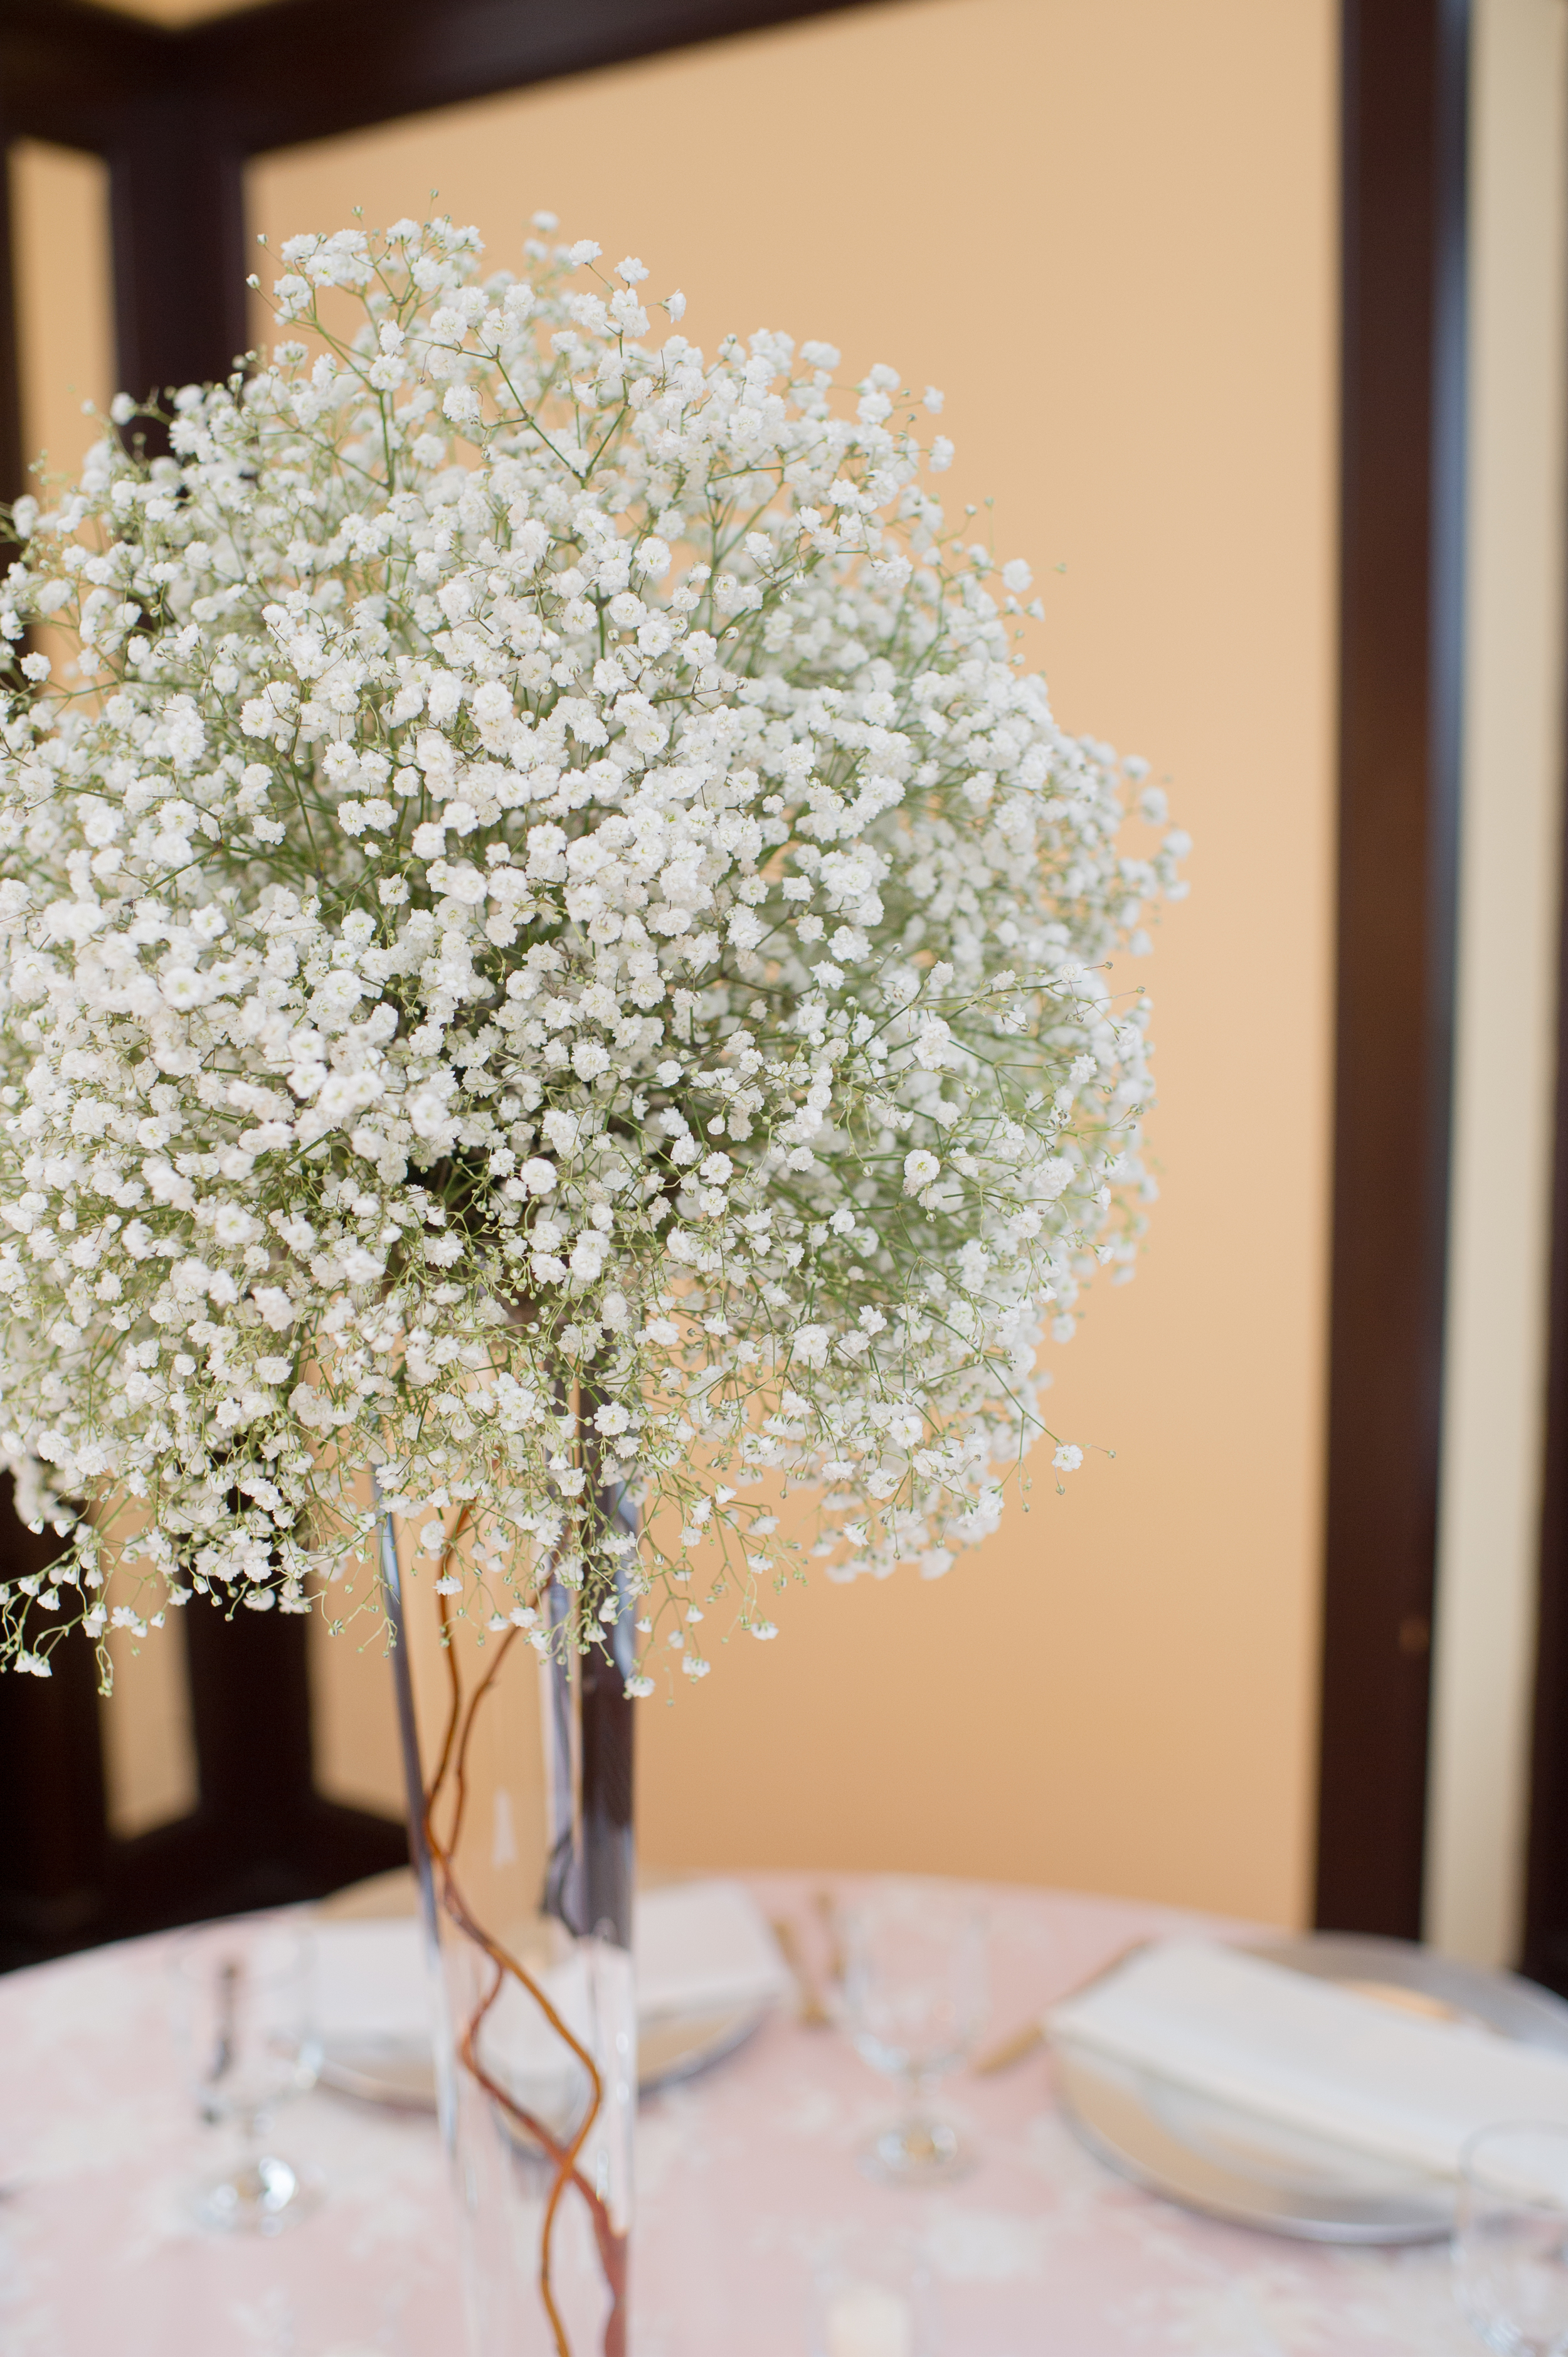 waveny_house_wedding_New_canaan_CT_Amy_Champagne_Events560.jpg